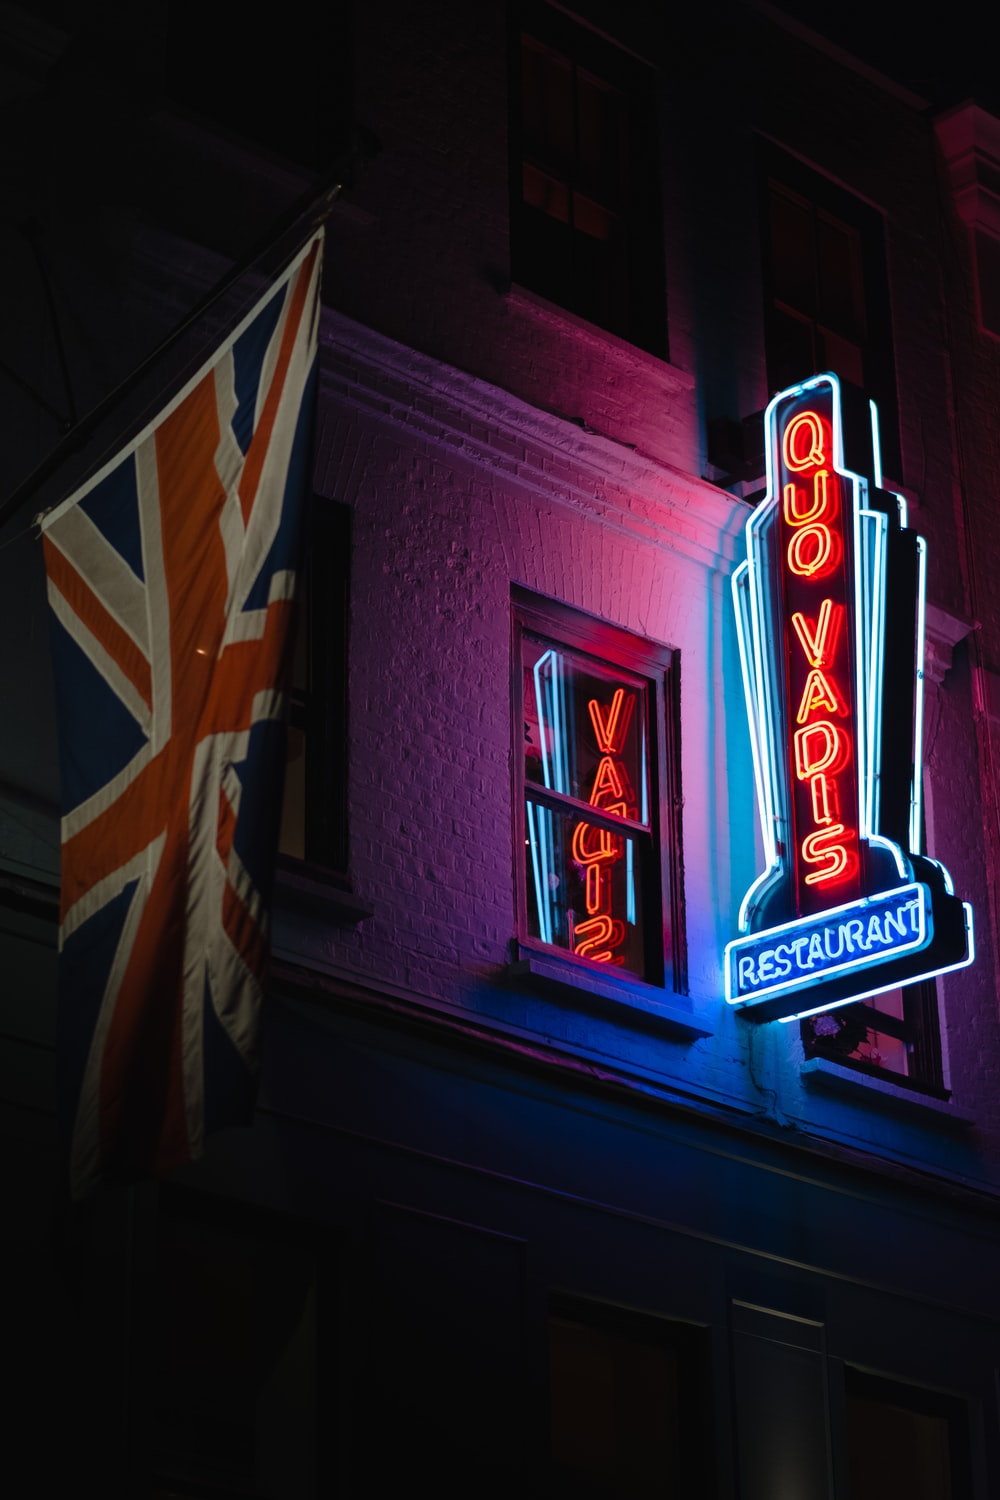 Neon, light, london and soho | HD photo by Craig Whitehead